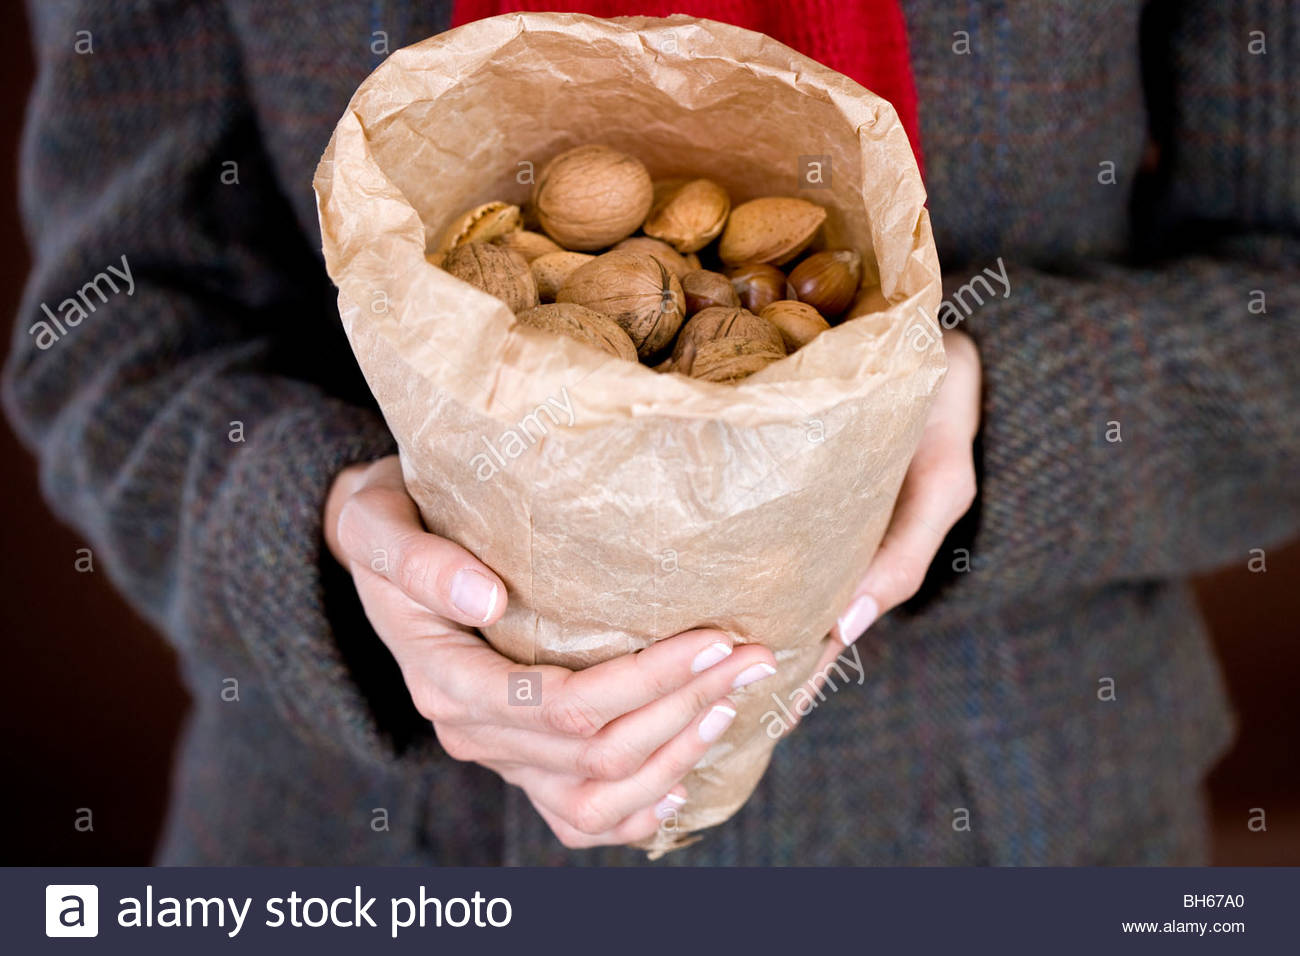 A woman holding a bag full of mixed nuts Stock Photo